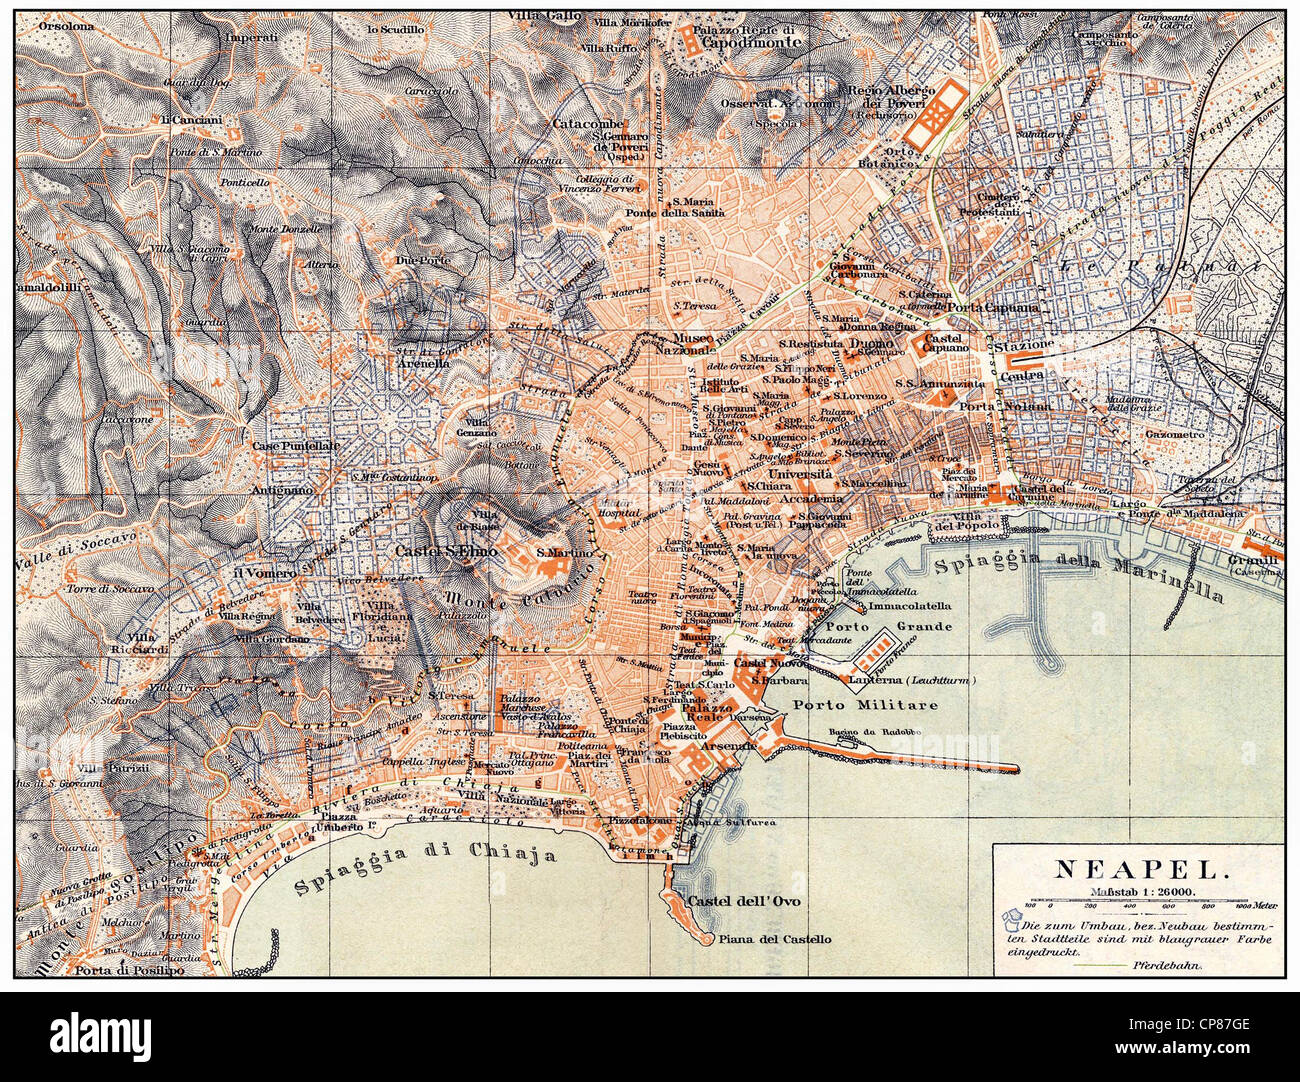 Historical map of Naples and surroundings, Italy, 19th Century, Historische, zeichnerische Darstellung, Landkarte, - Stock Image